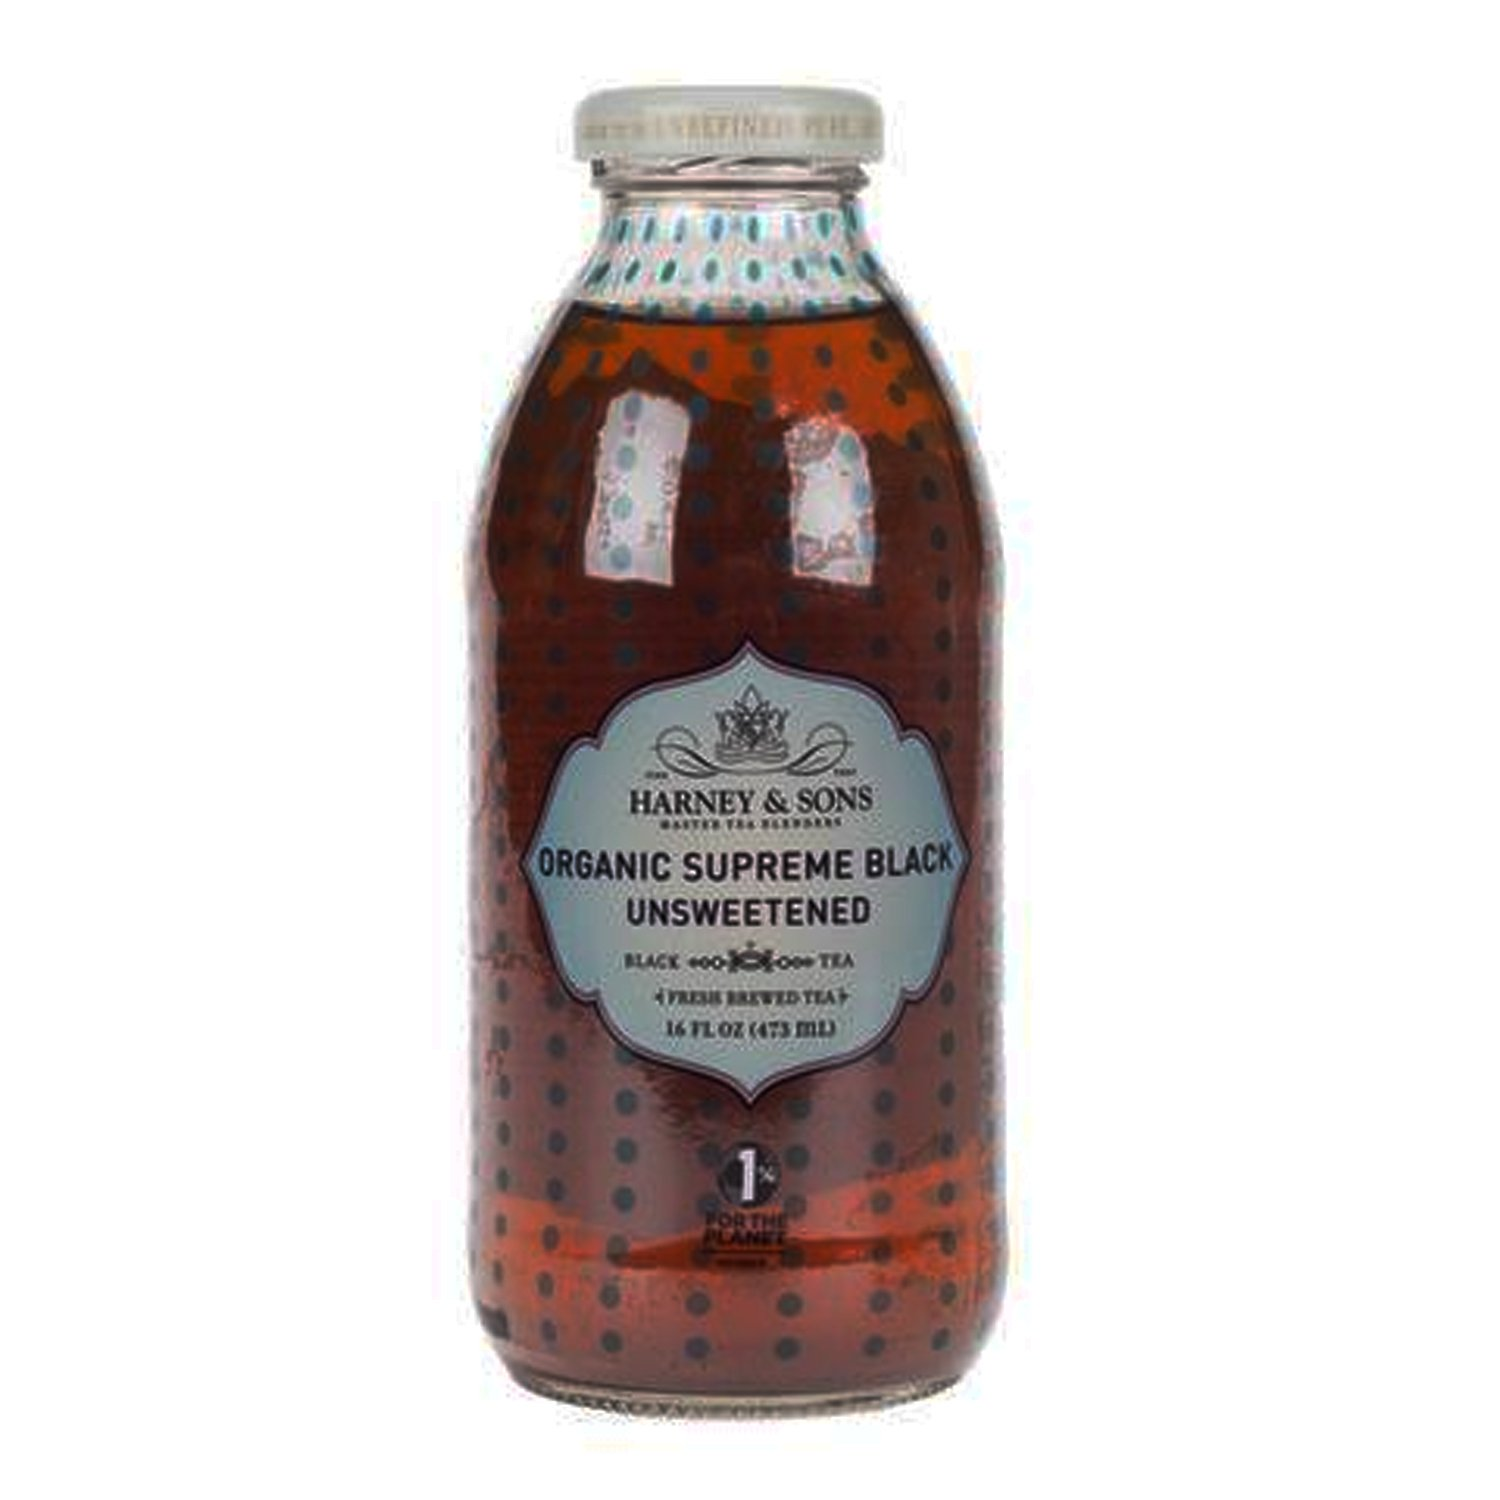 Harney & Sons - Organic Supreme Black Unsweetened Tea, 16 fl oz (12 Glass Bottles) by Harney & Sons (Image #1)